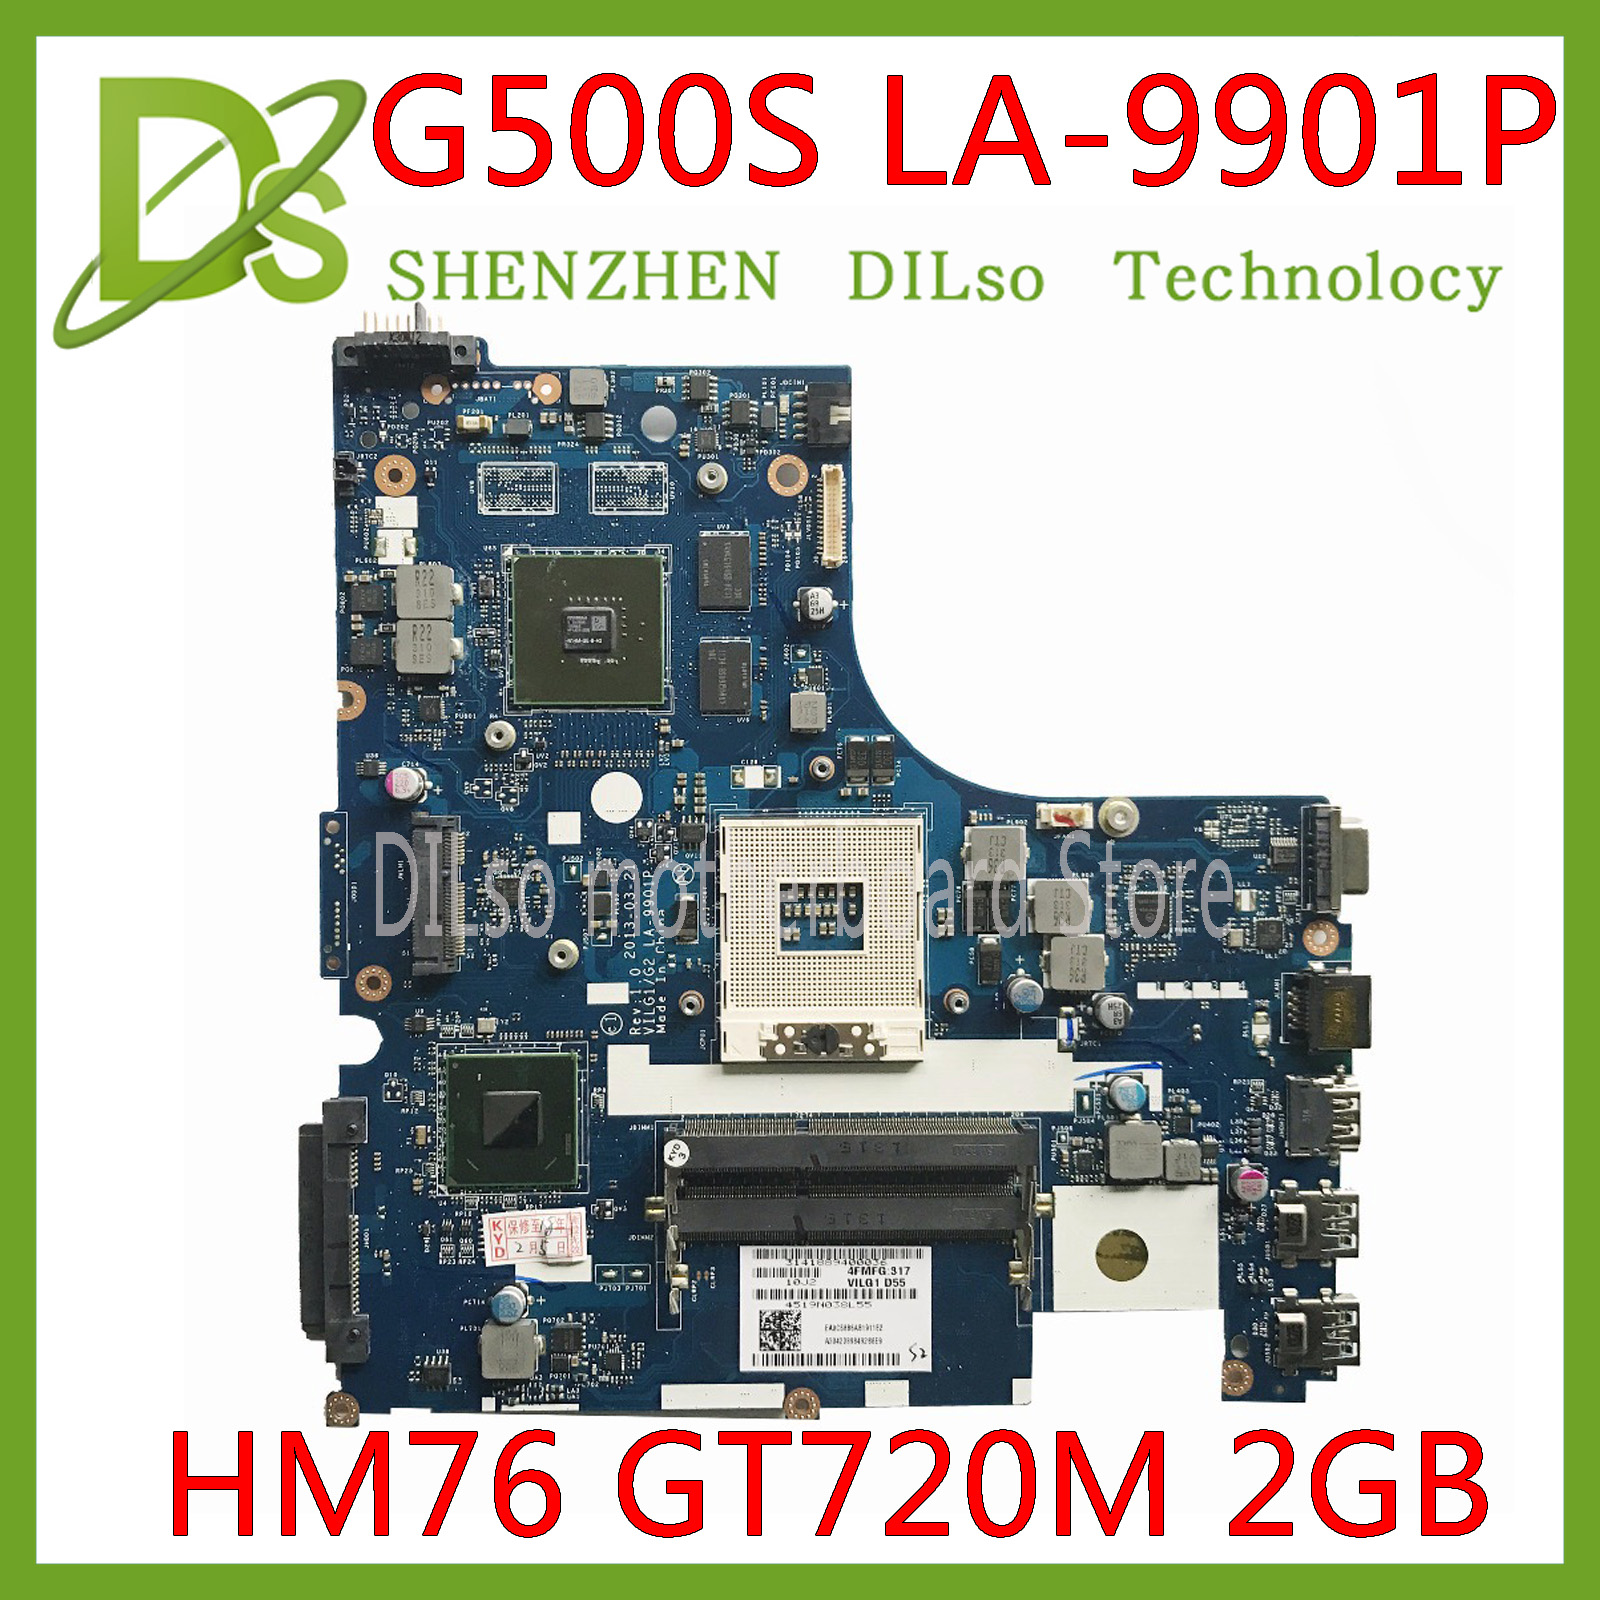 KEFU LA-9901P Laptop Motherboard For Lenovo G500S Motherboard VILG1 LA-9901P HM76 100% Tested